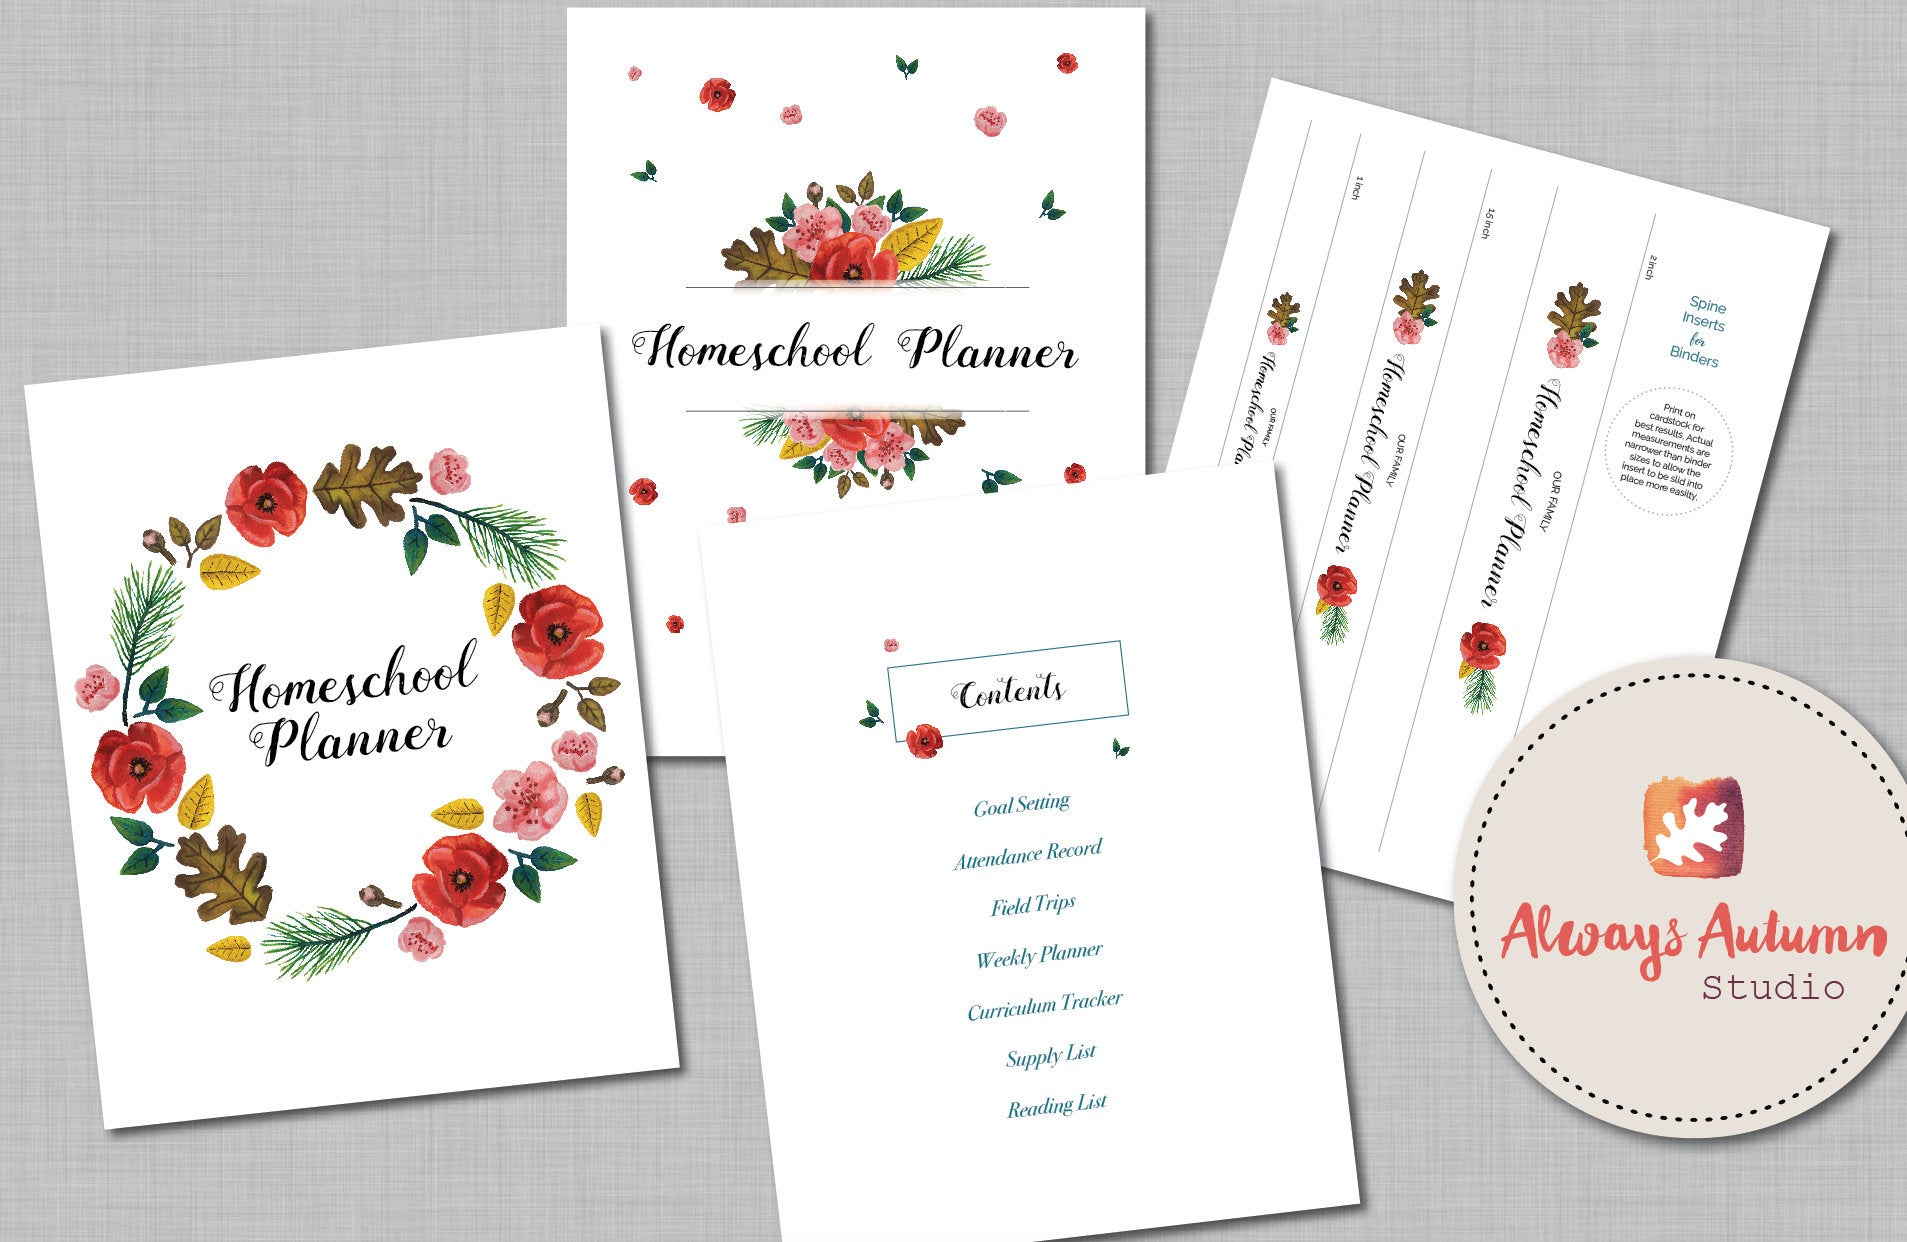 Handpainted Floral Four Seasons Homeschool Printable Planner - Undated -  Includes Year Round Attendance Record & Editable Weekly Planner intended for Homeschool Year At A Glance 2019-2020 Botanical Calendar Printable Free